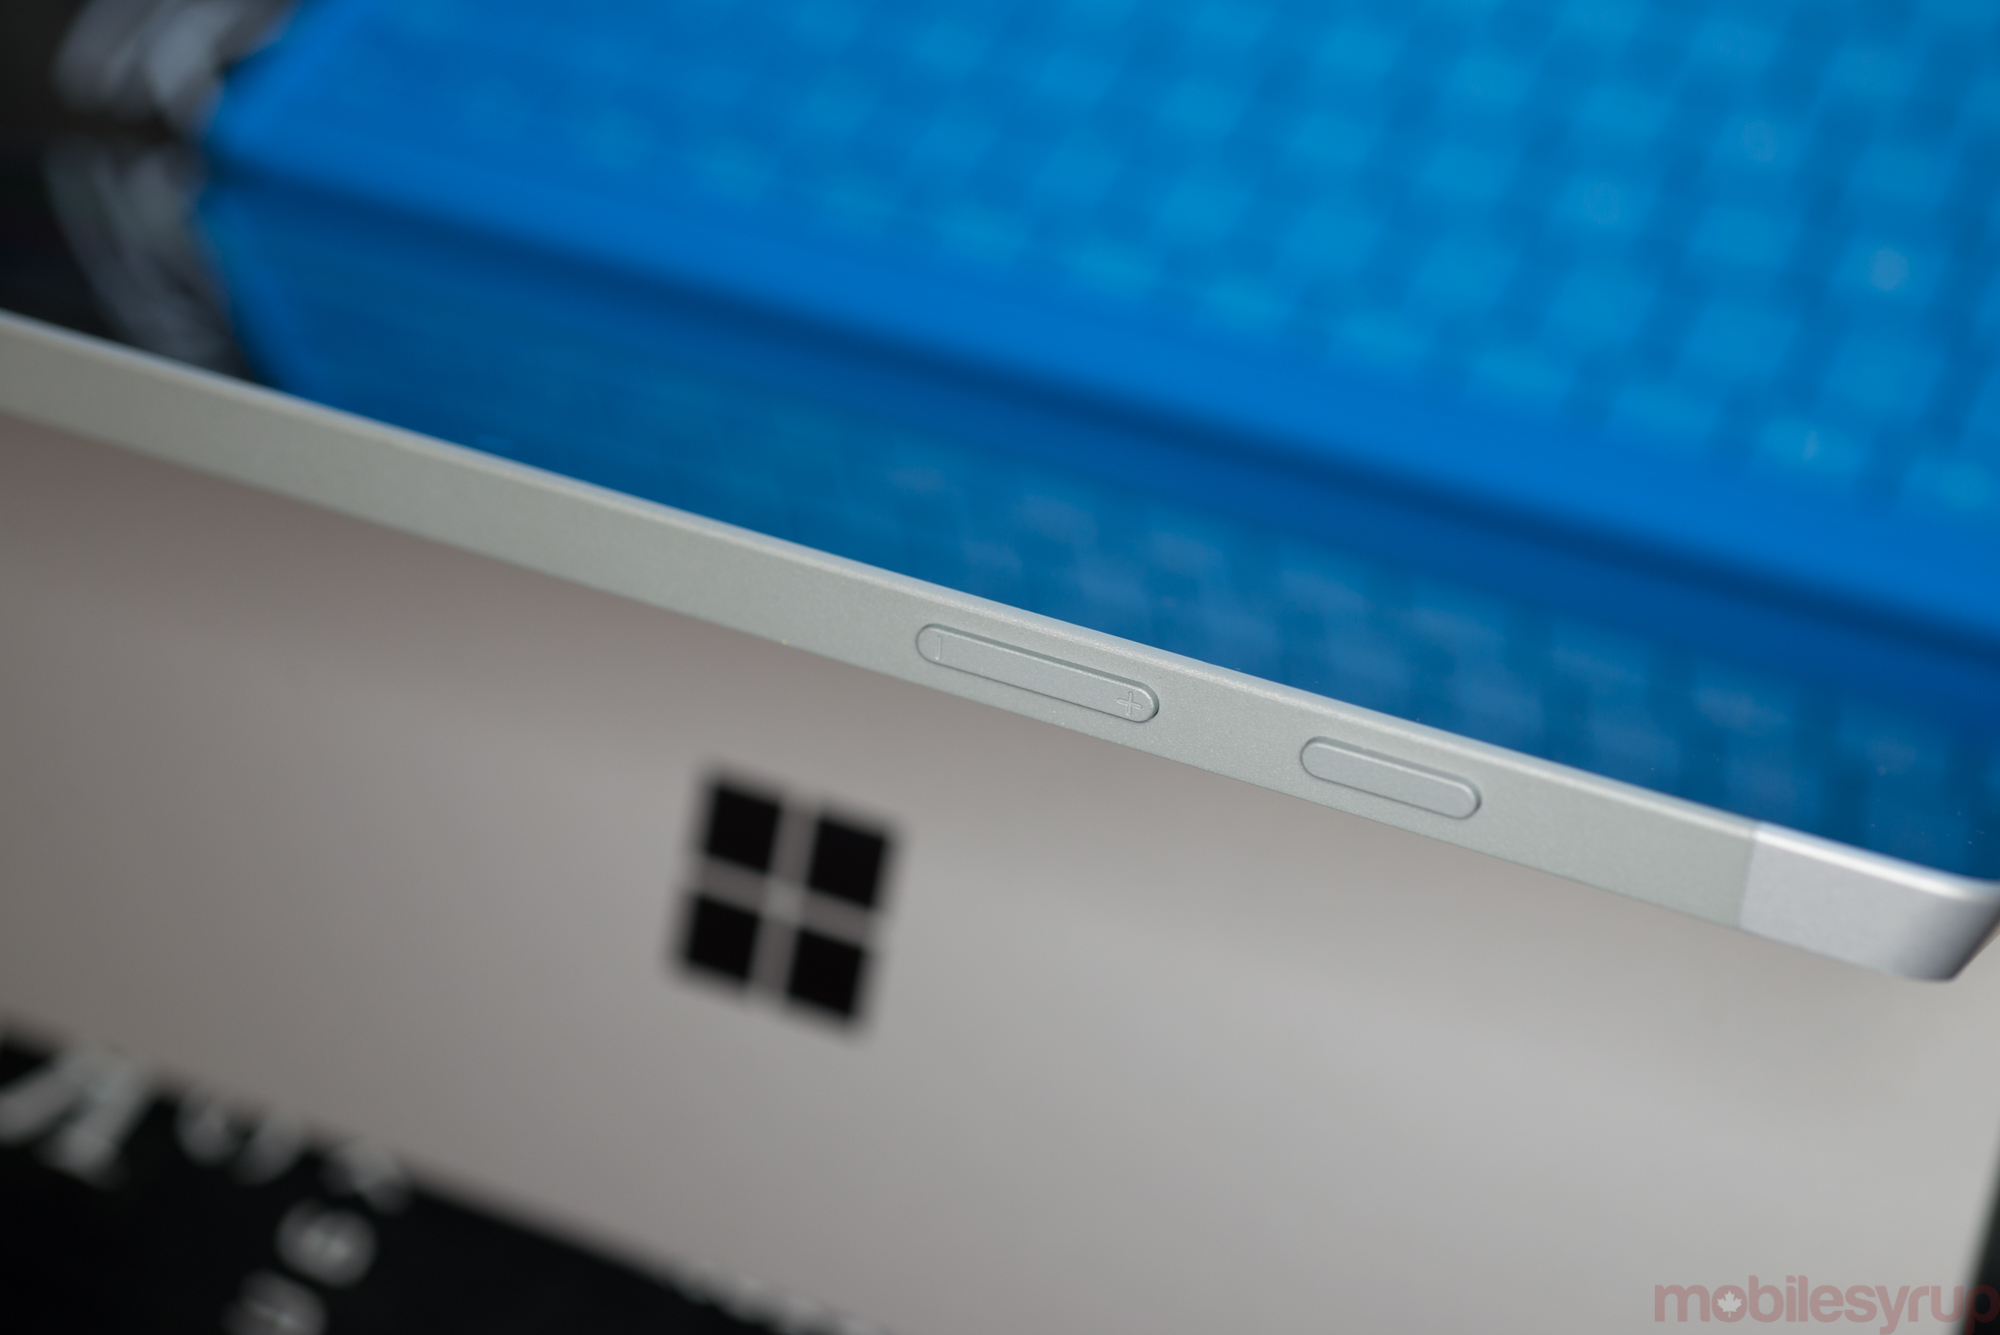 surface3review-5993